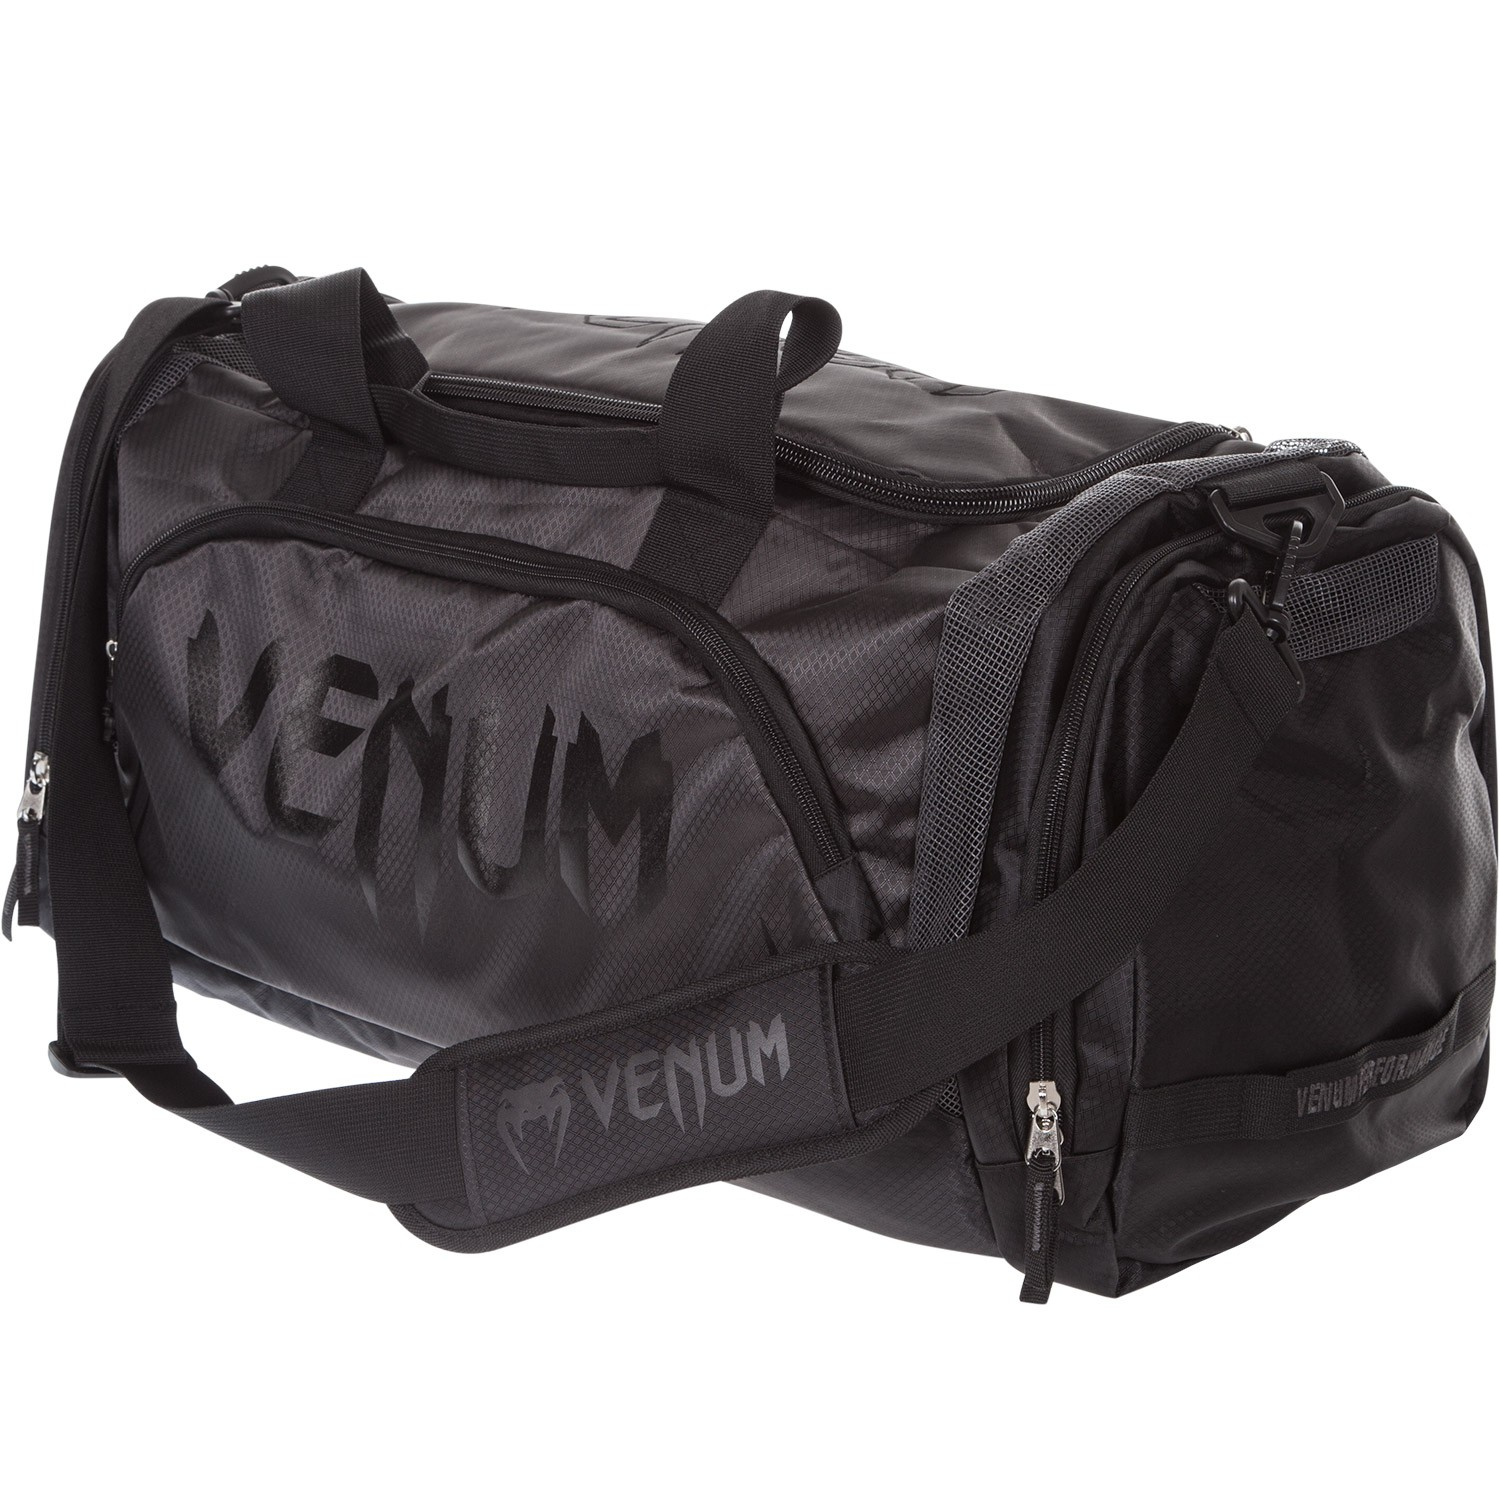 191f8949477b Venum Trainer Lite Sport MMA Boxing Duffle Gym Bag - All Black